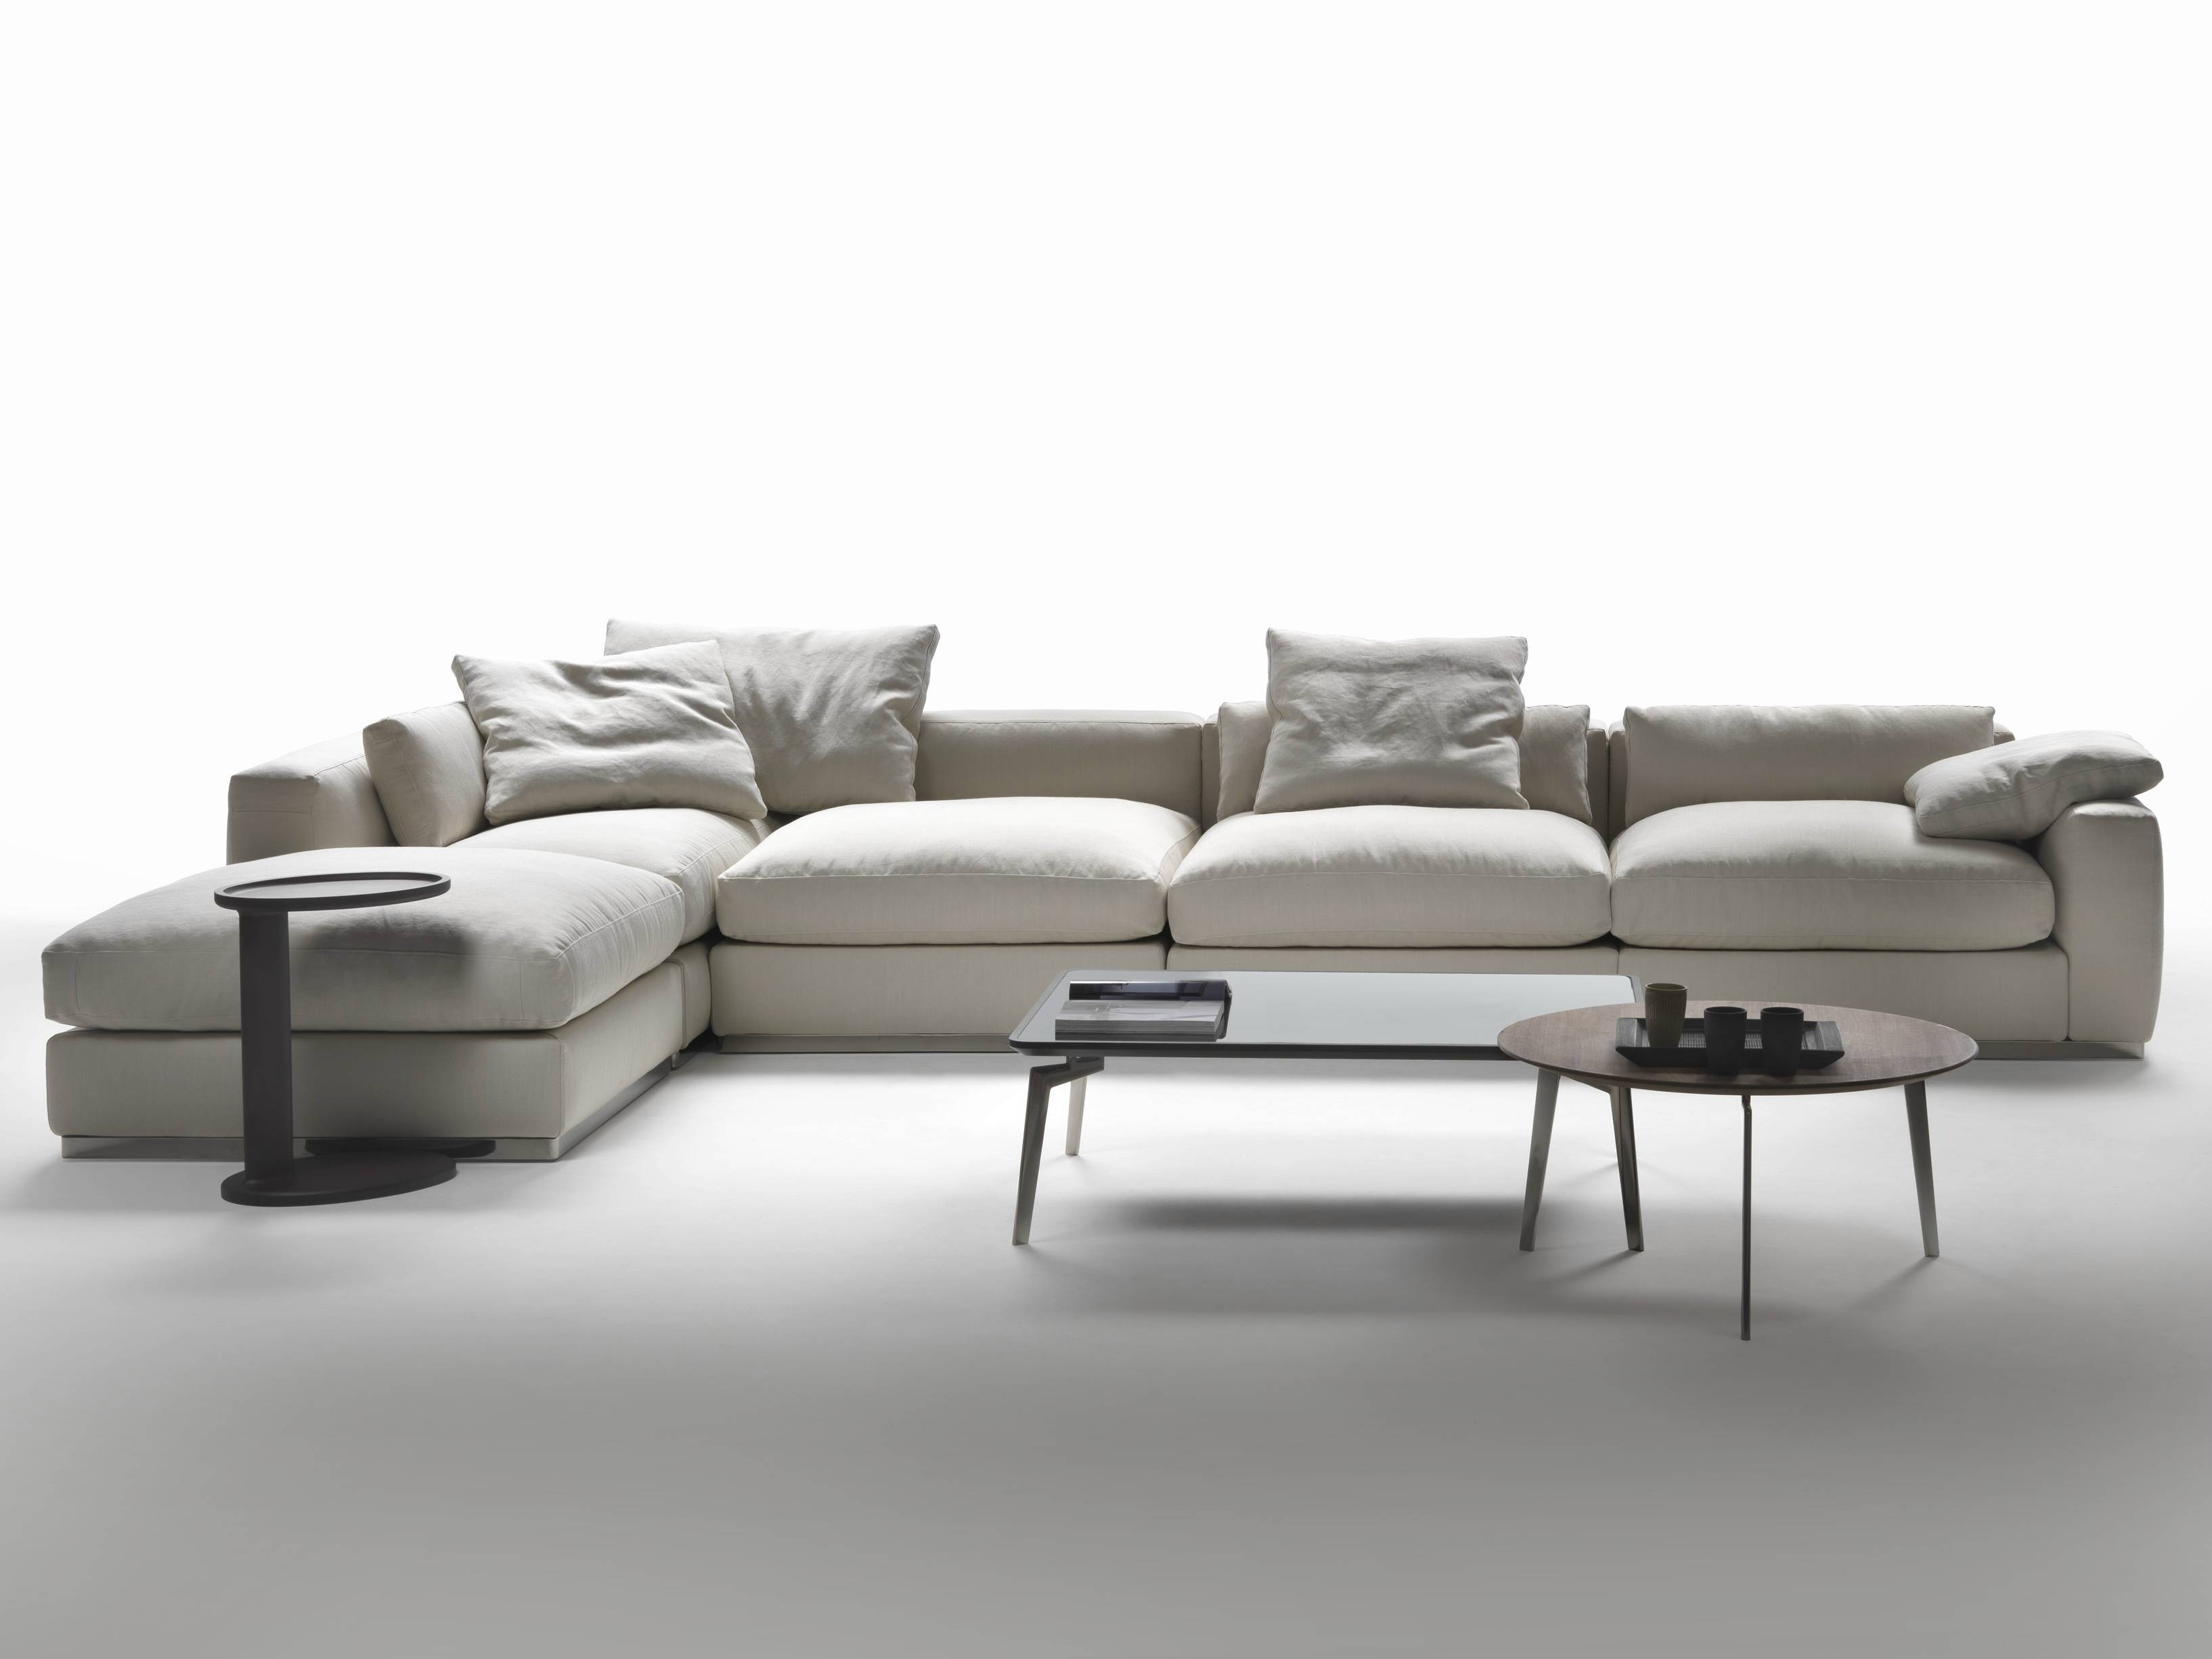 Flexform Sectional Sofa - Cleanupflorida intended for Flexform Sofas (Image 12 of 25)